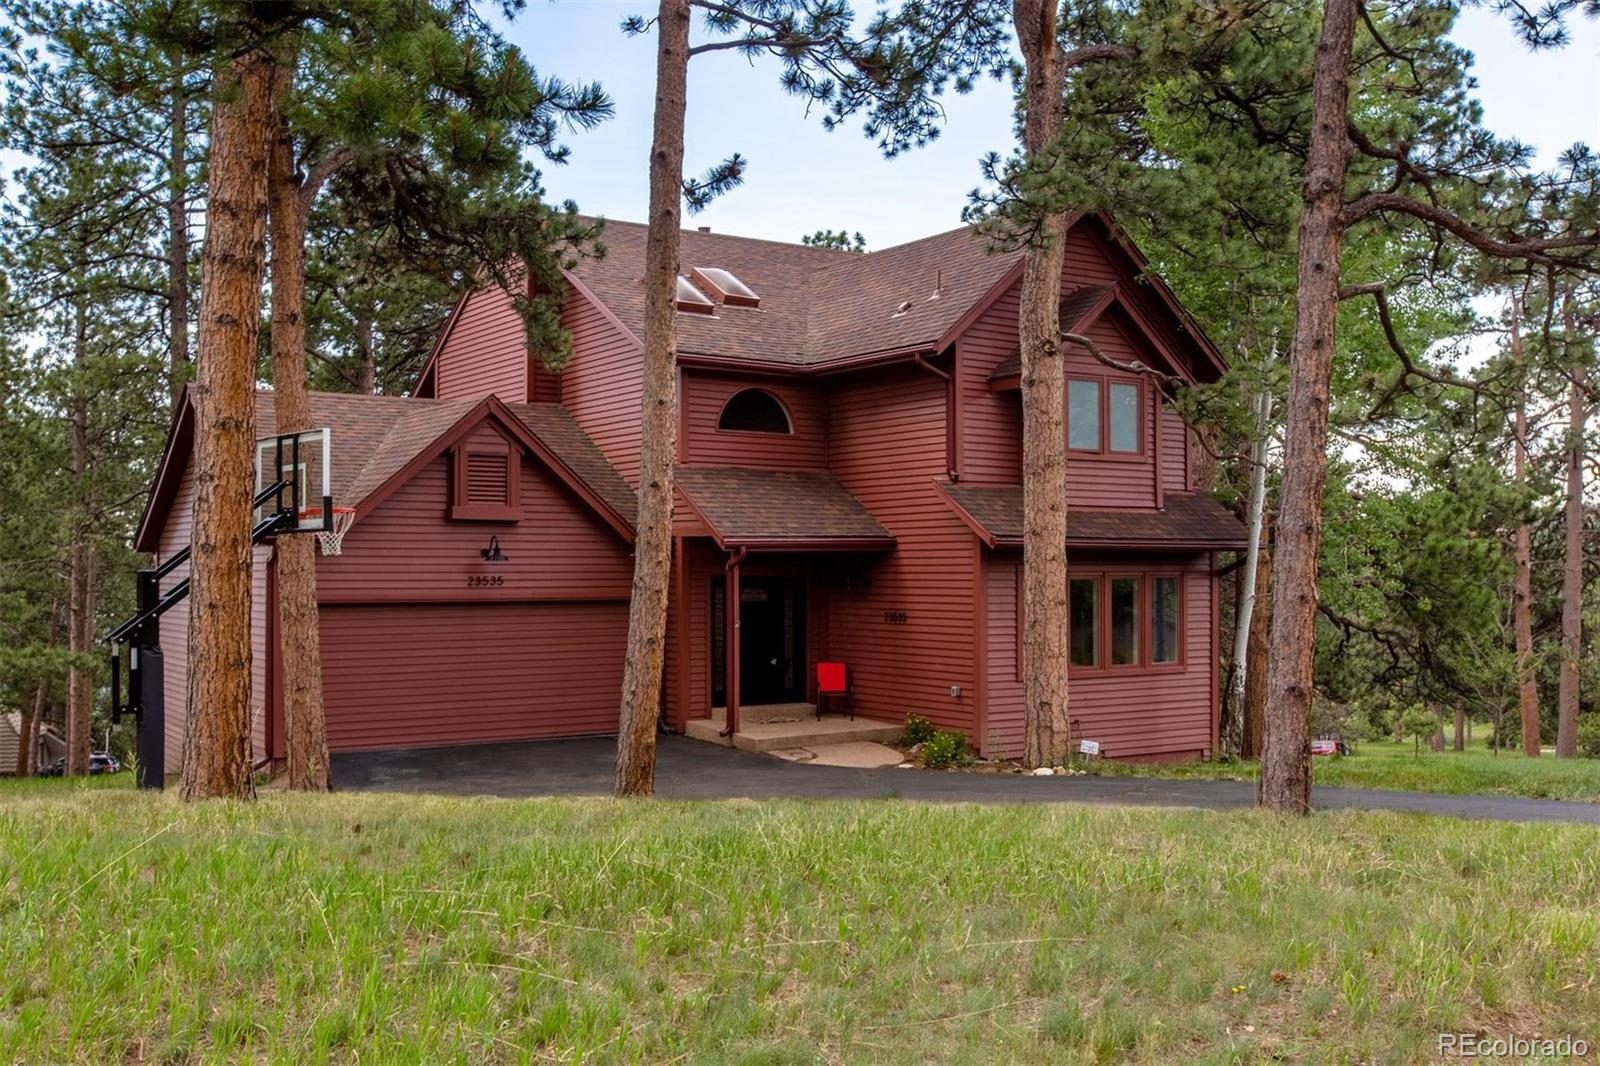 MLS# 7345435 - 1 - 23535 Currant Drive, Golden, CO 80401